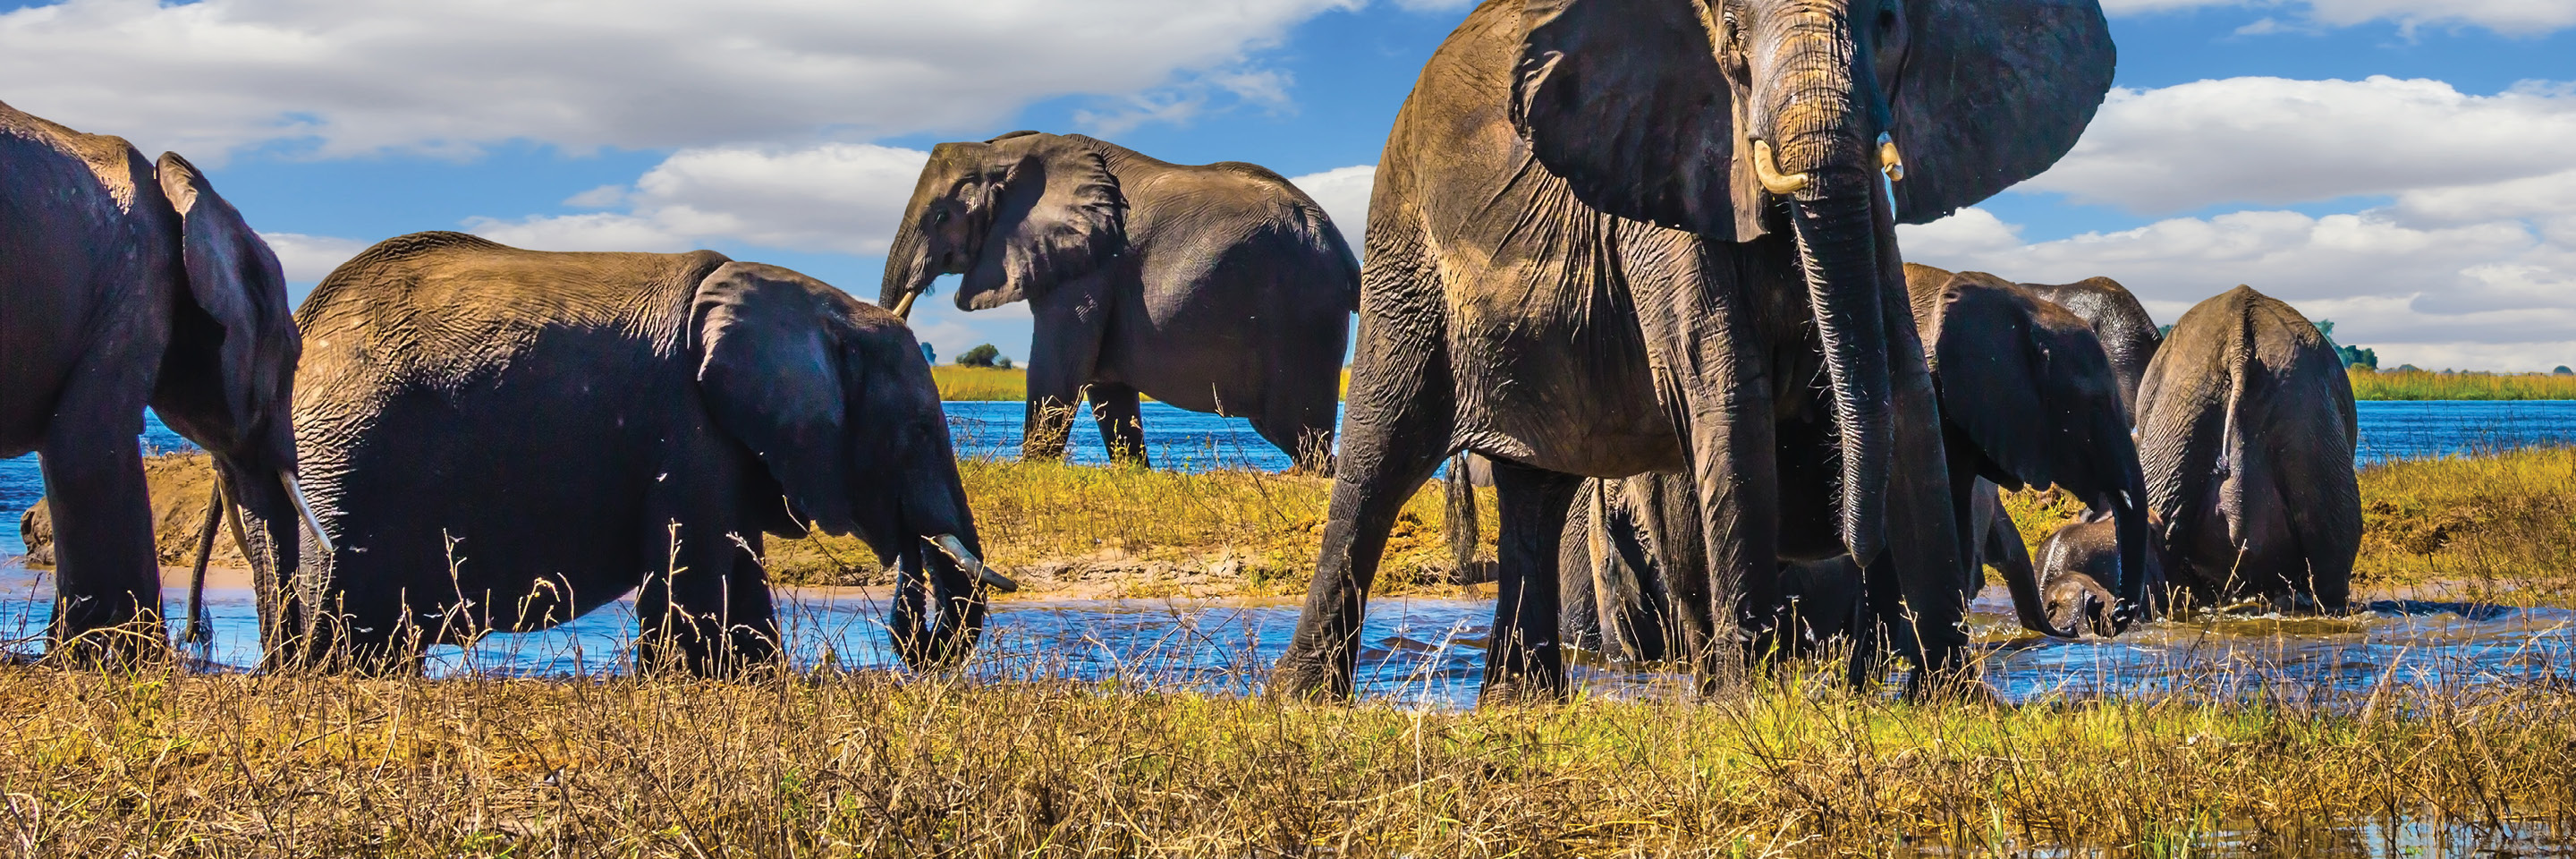 Splendors of South Africa & Victoria Falls with Chobe River Cruise